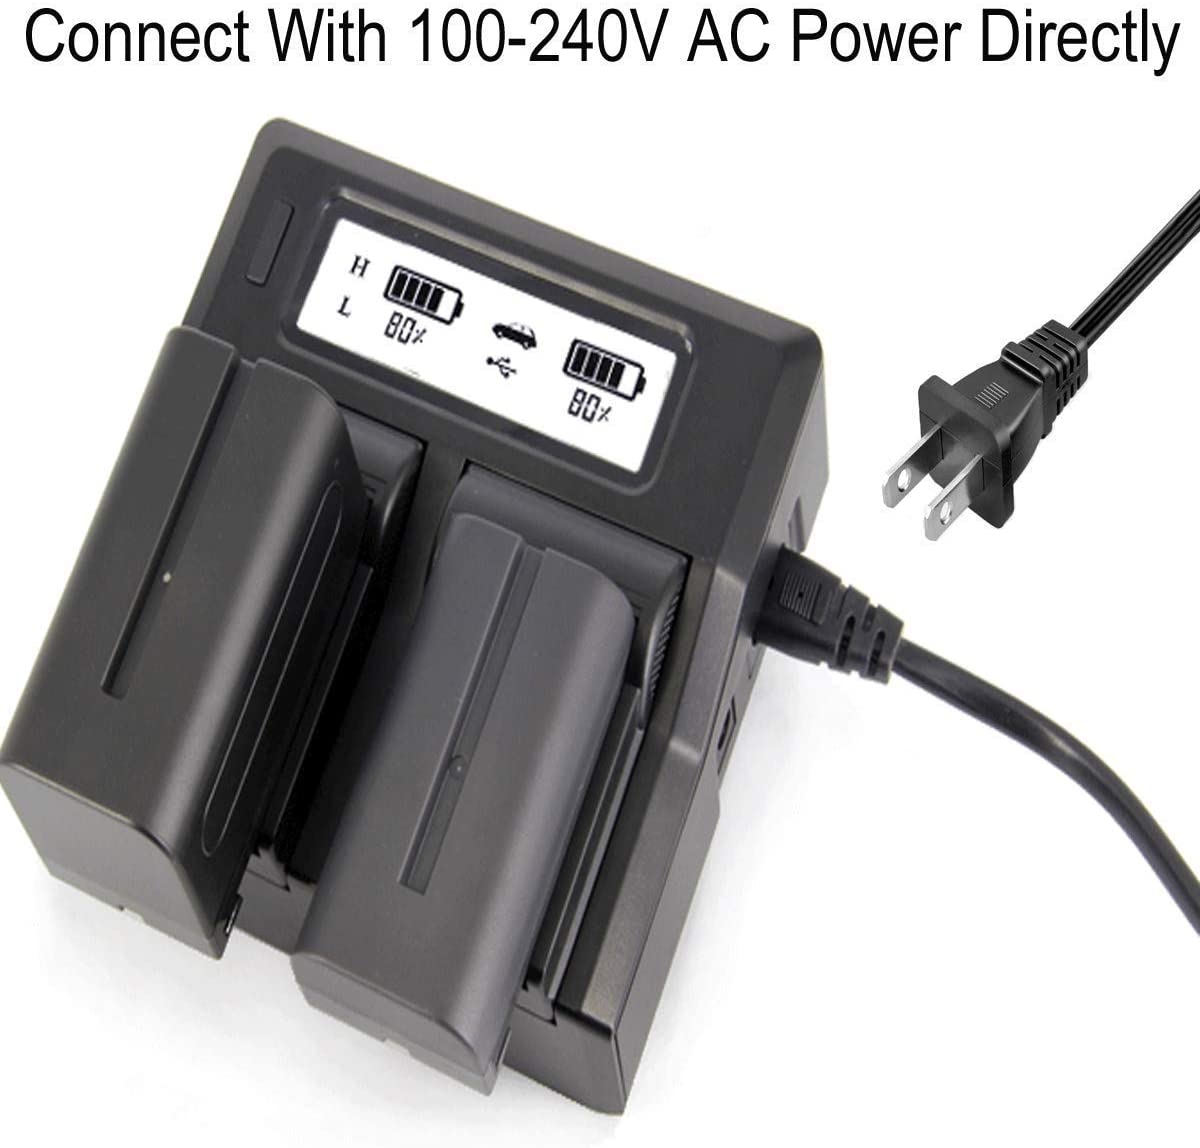 DCR-SX45 DCR-SX65 DCR-SX44 DCR-SX85 Handycam Camcorder Battery Charger for Sony DCR-SX34